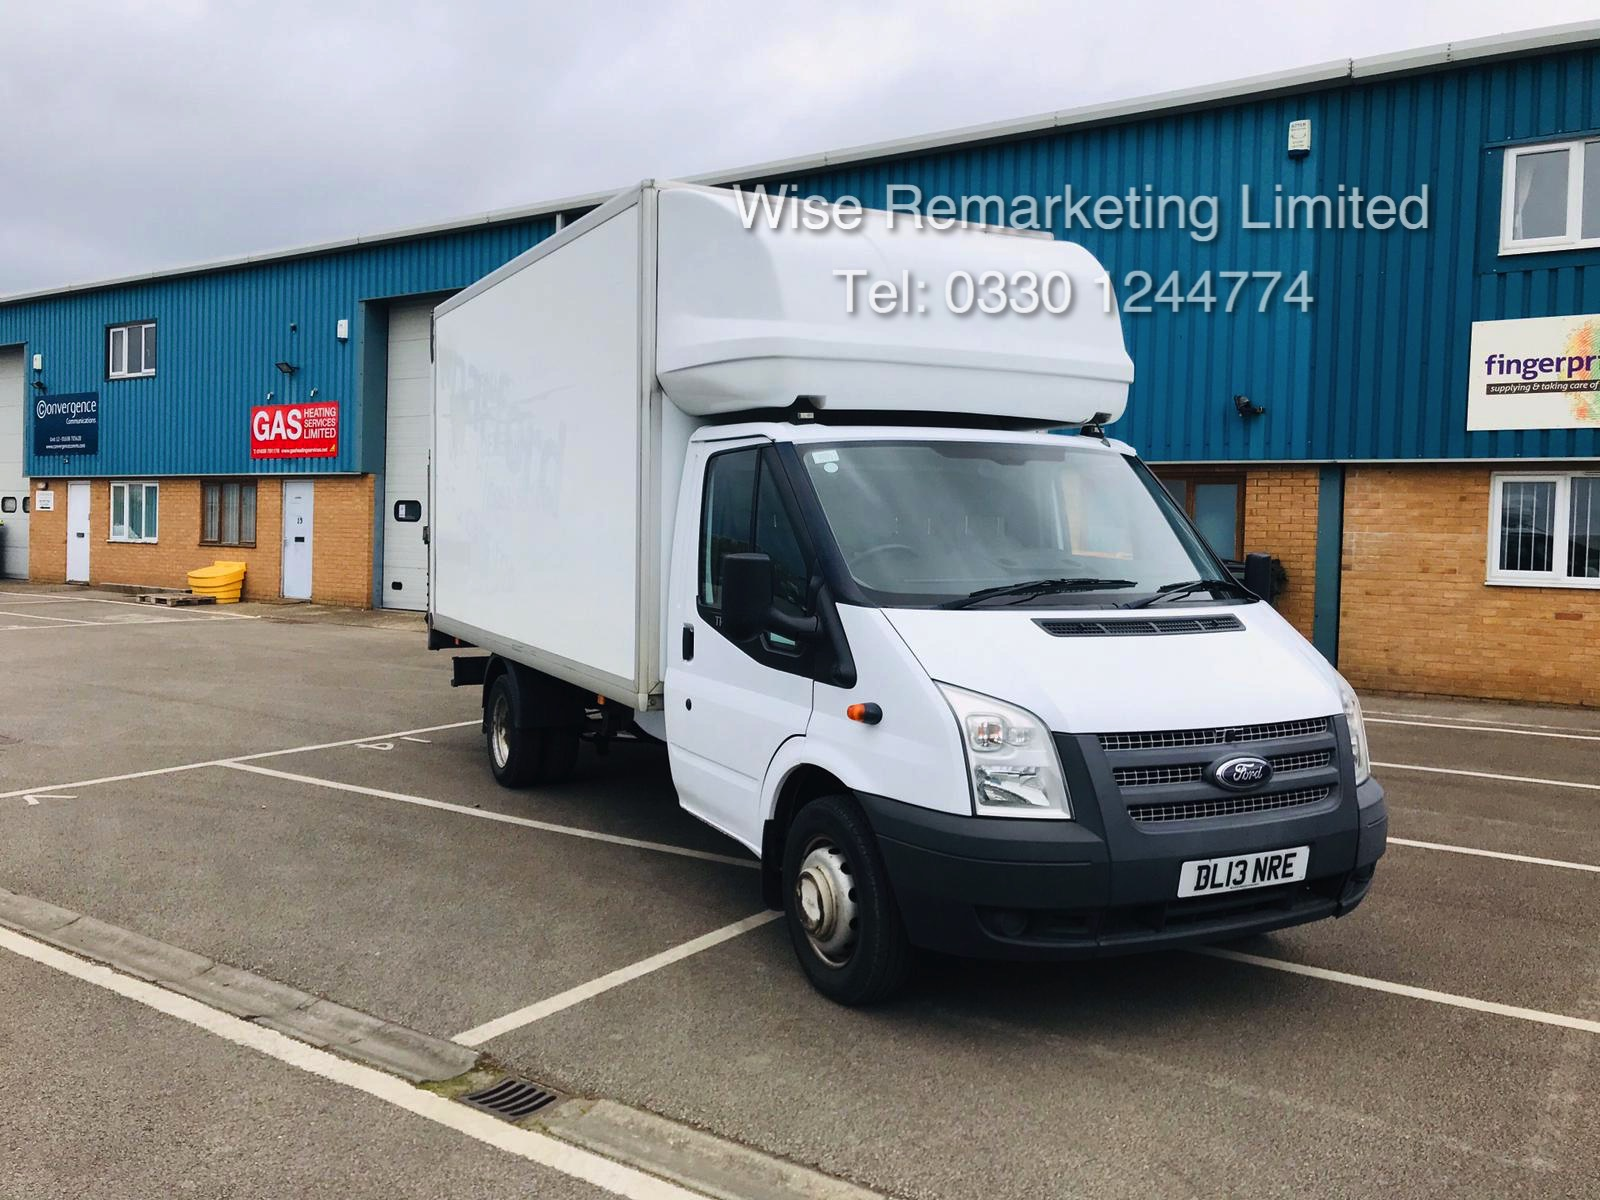 Ford Transit T350 2.2 TDCI Luton Van - 6 Speed - Tail Lift - 2013 13 Reg - SAVE 20% NO VAT - Image 2 of 23